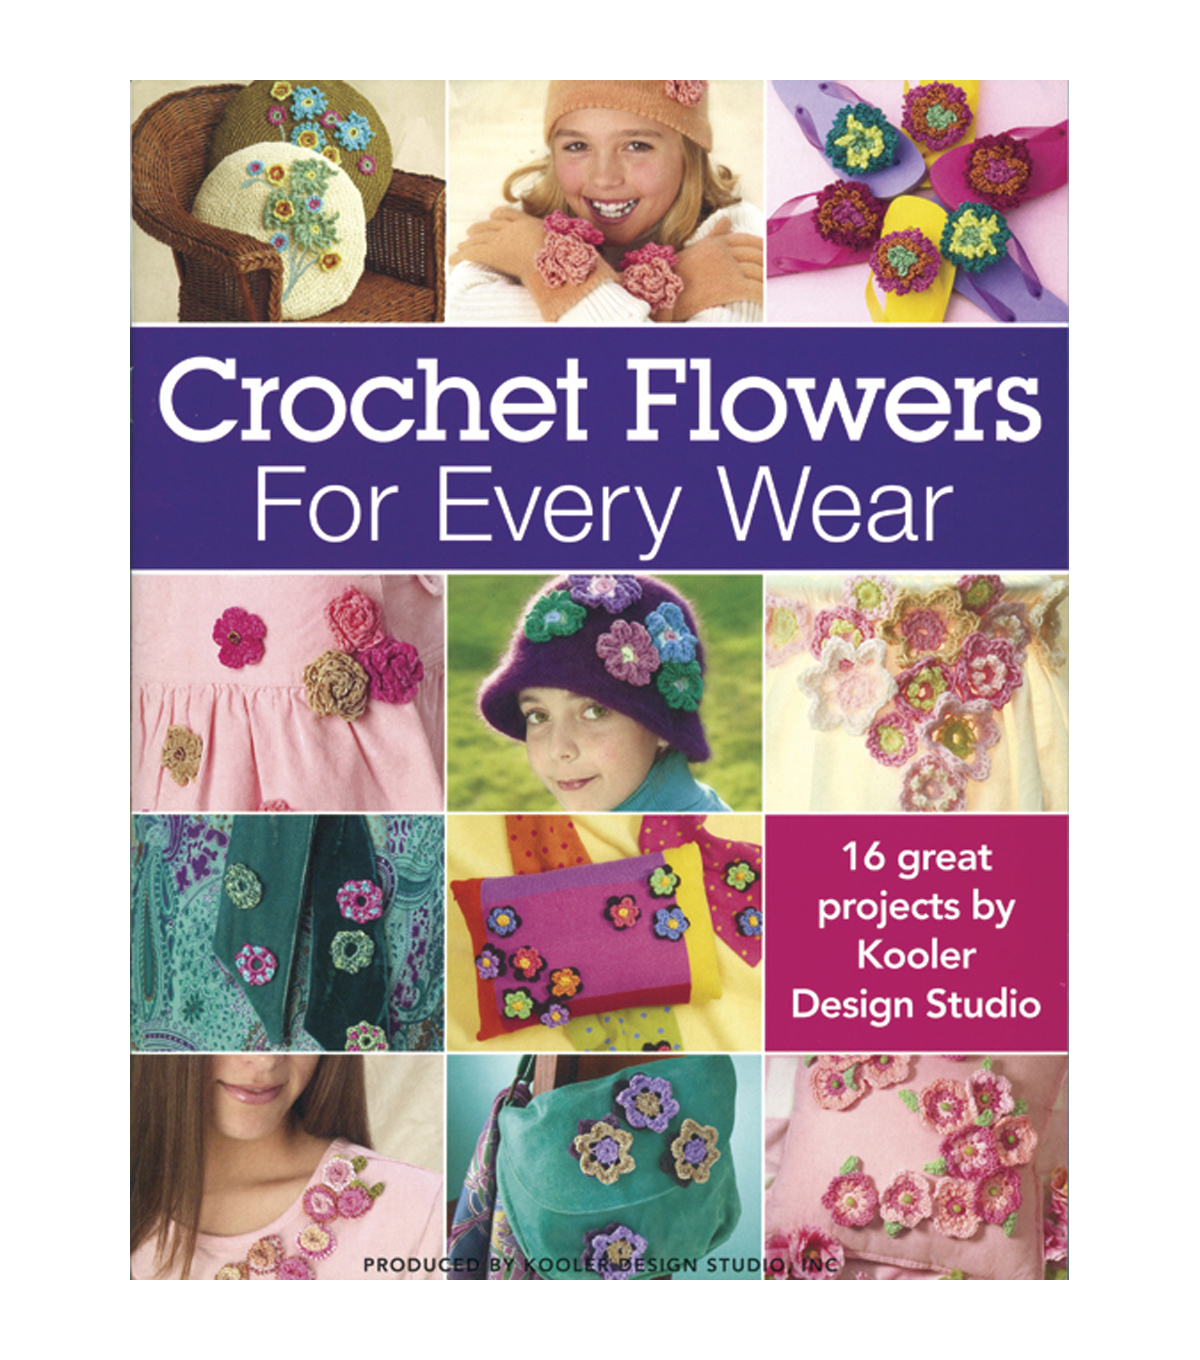 Crocheted Flowers For Every Wear